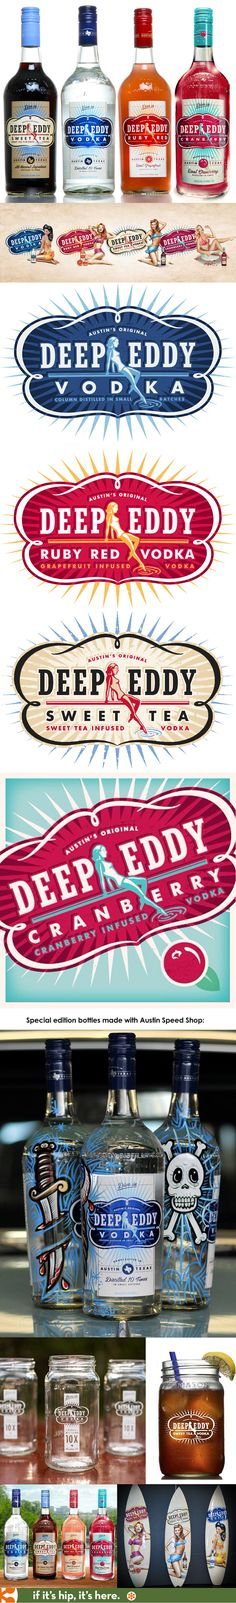 Deep Eddy Vodkas of Austin Texas have great looking logos, bottles and branding. Their website, by peach pixel design is also very impressive.